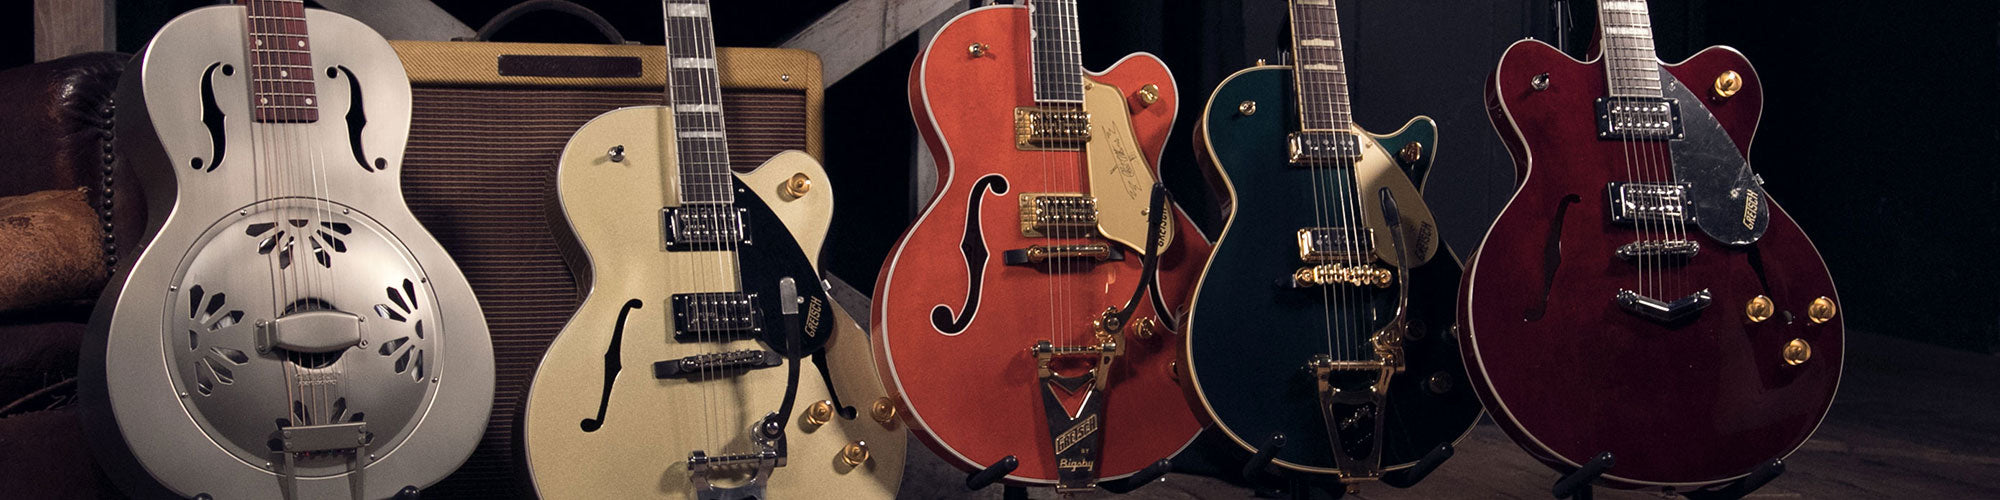 Gretsch Electromatic Series